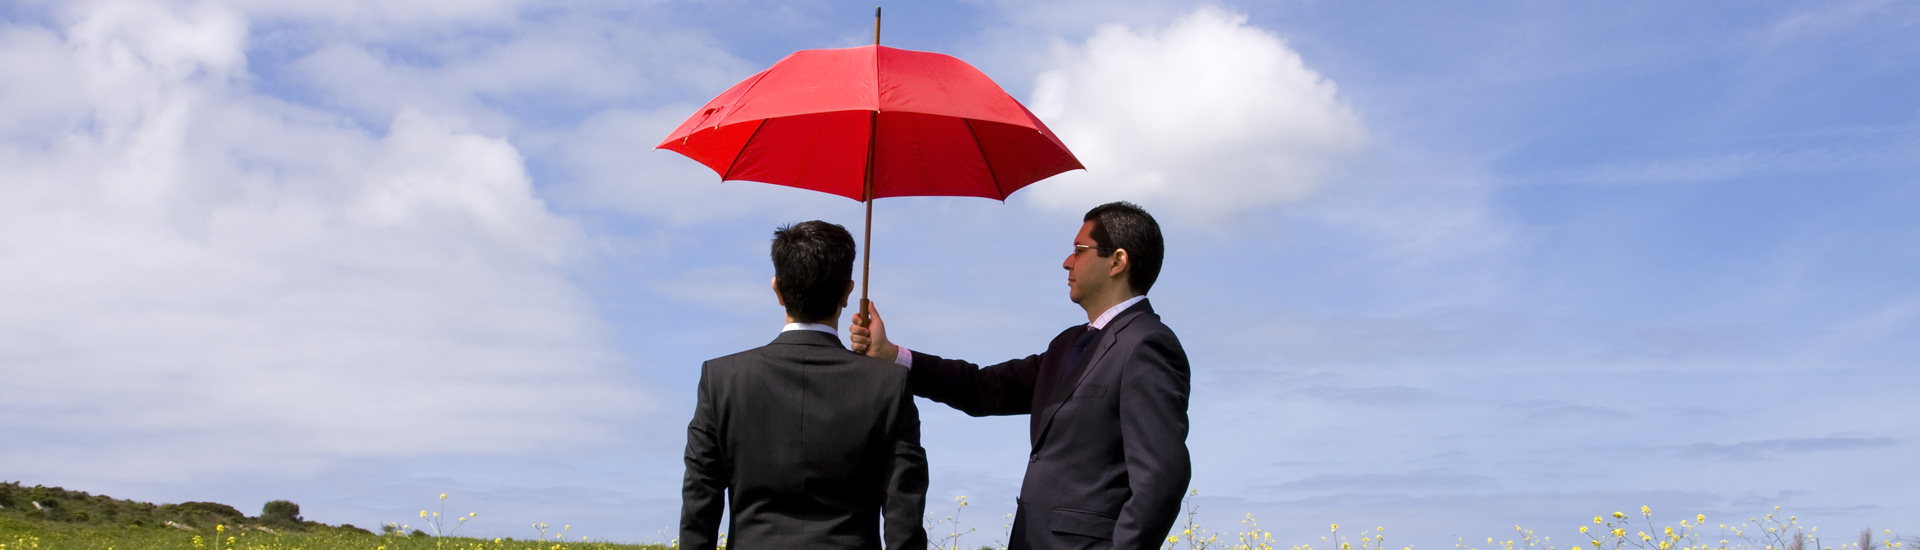 Get-A-Quote-For-Umbrella-Insurance